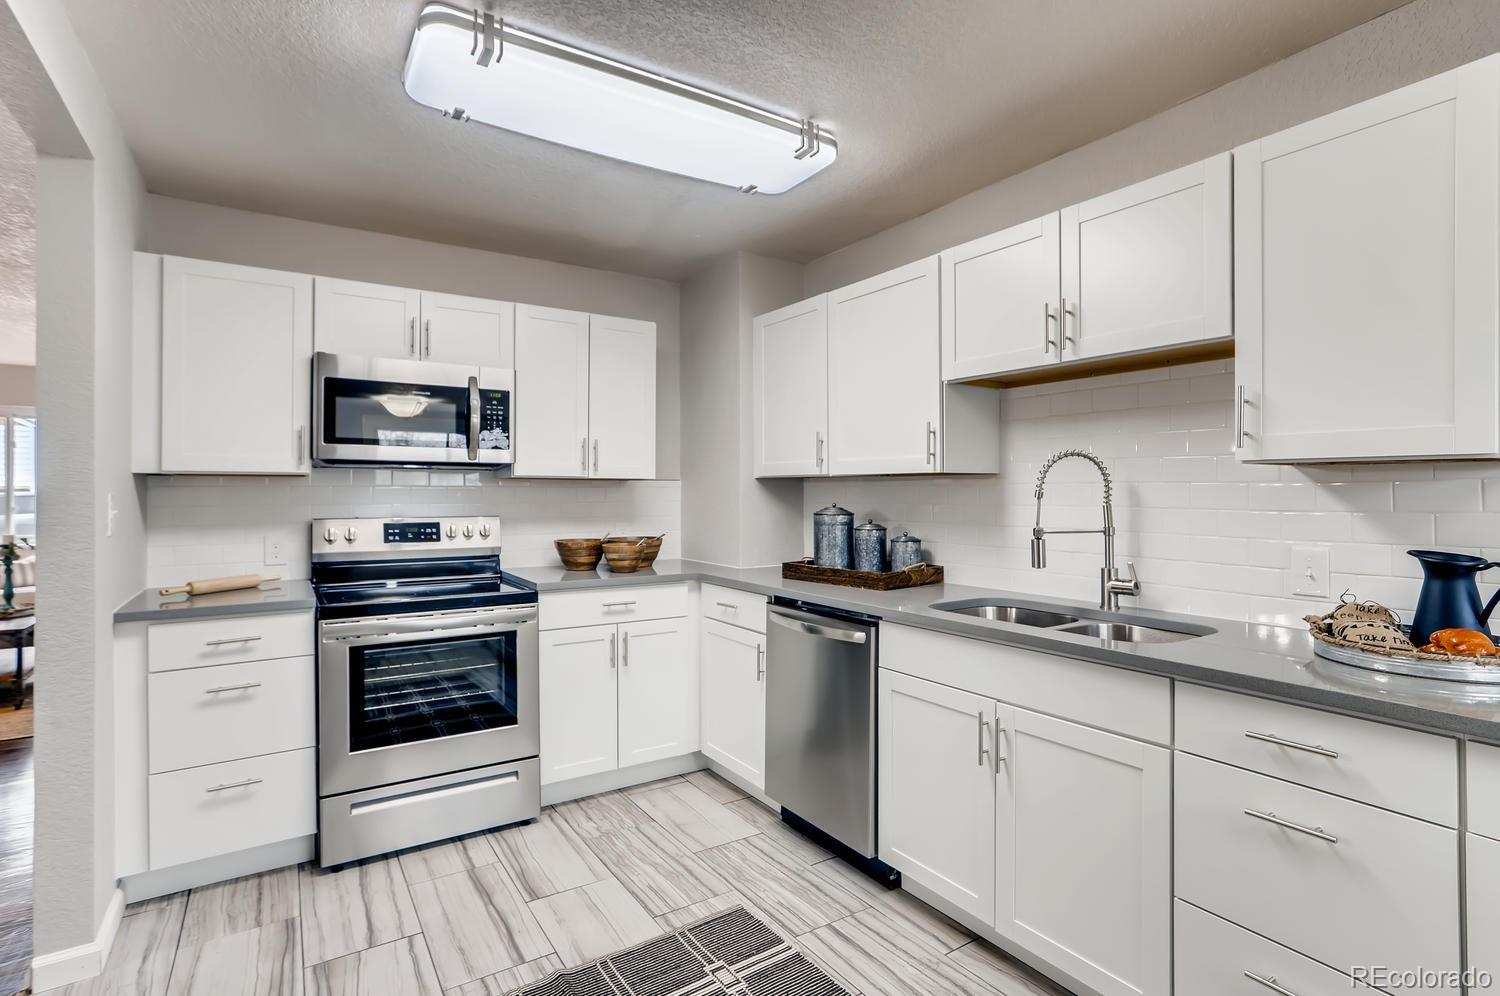 MLS# 2830054 - 9 - 8408 W 62nd Place, Arvada, CO 80004